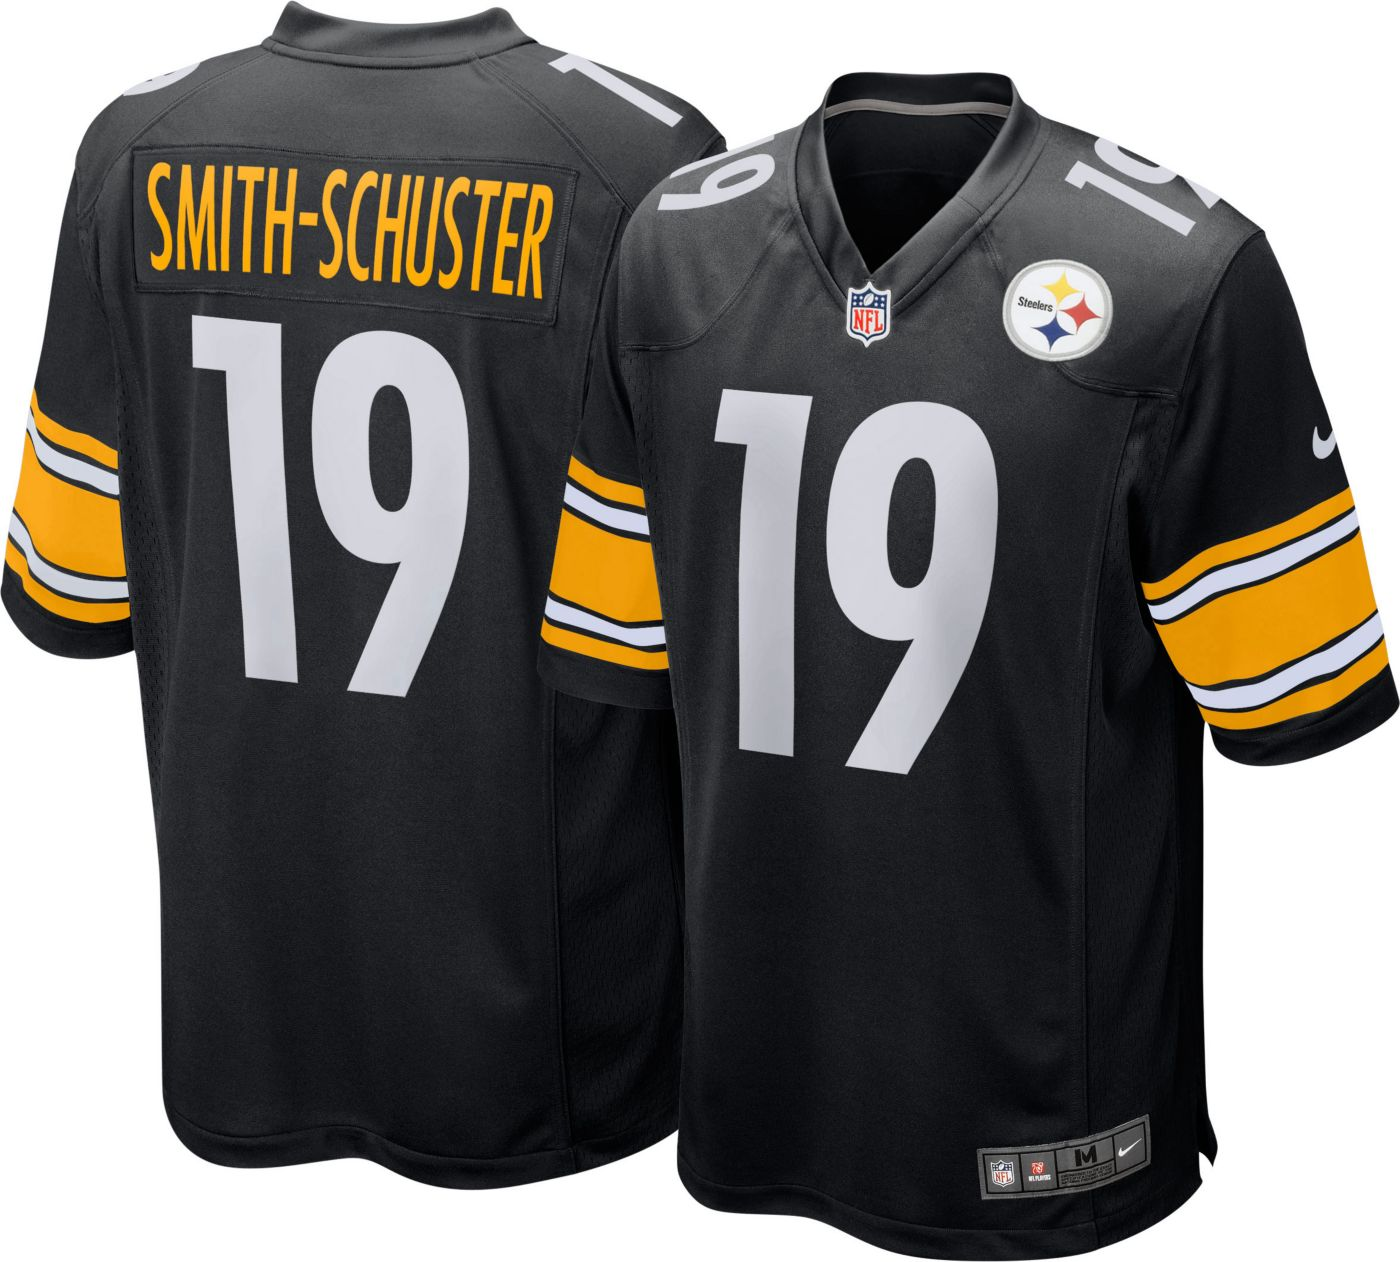 Nike Youth Home Game Jersey Pittsburgh Steelers JuJu Smith-Schuster #19